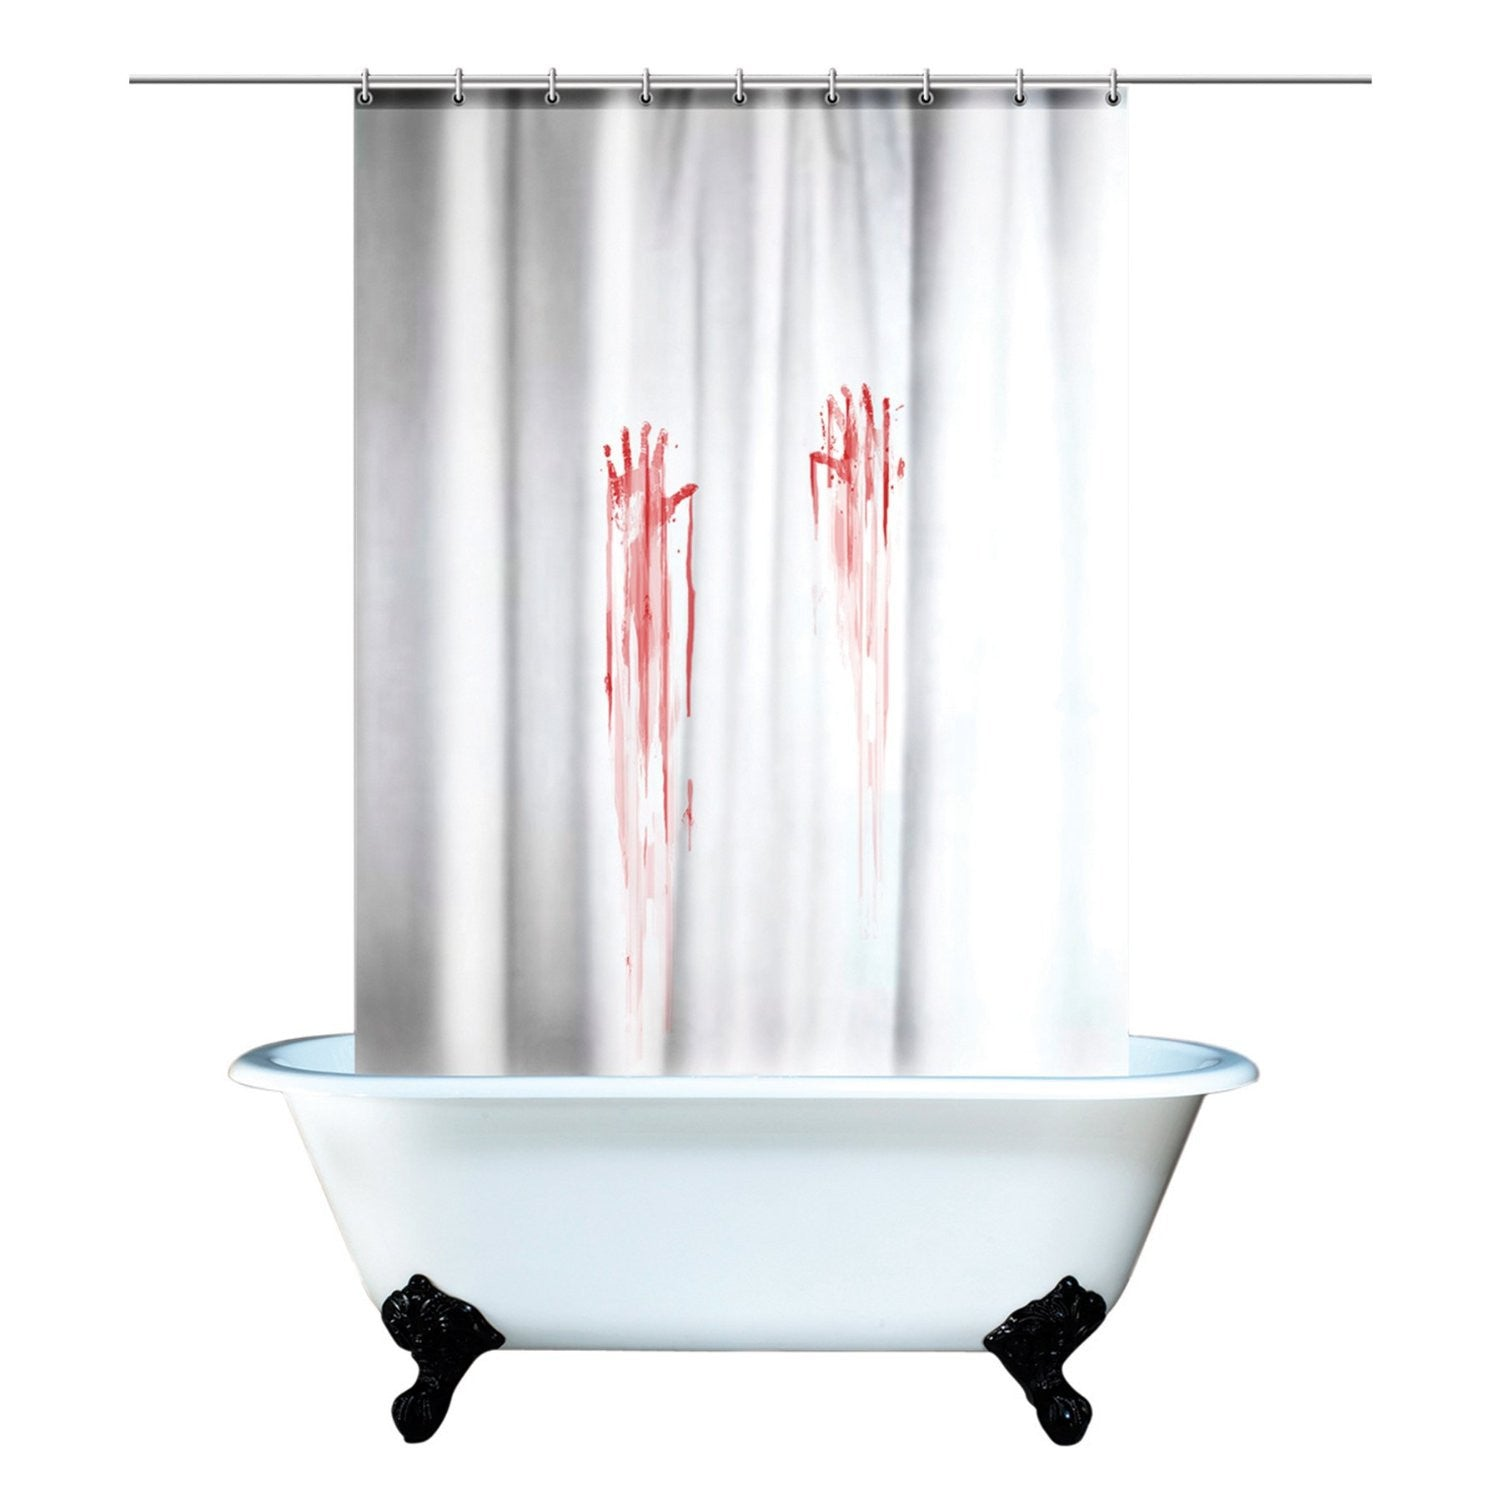 Blood Bath Shower Curtain By Spinning Hat - Off The Wall Toys and Gifts